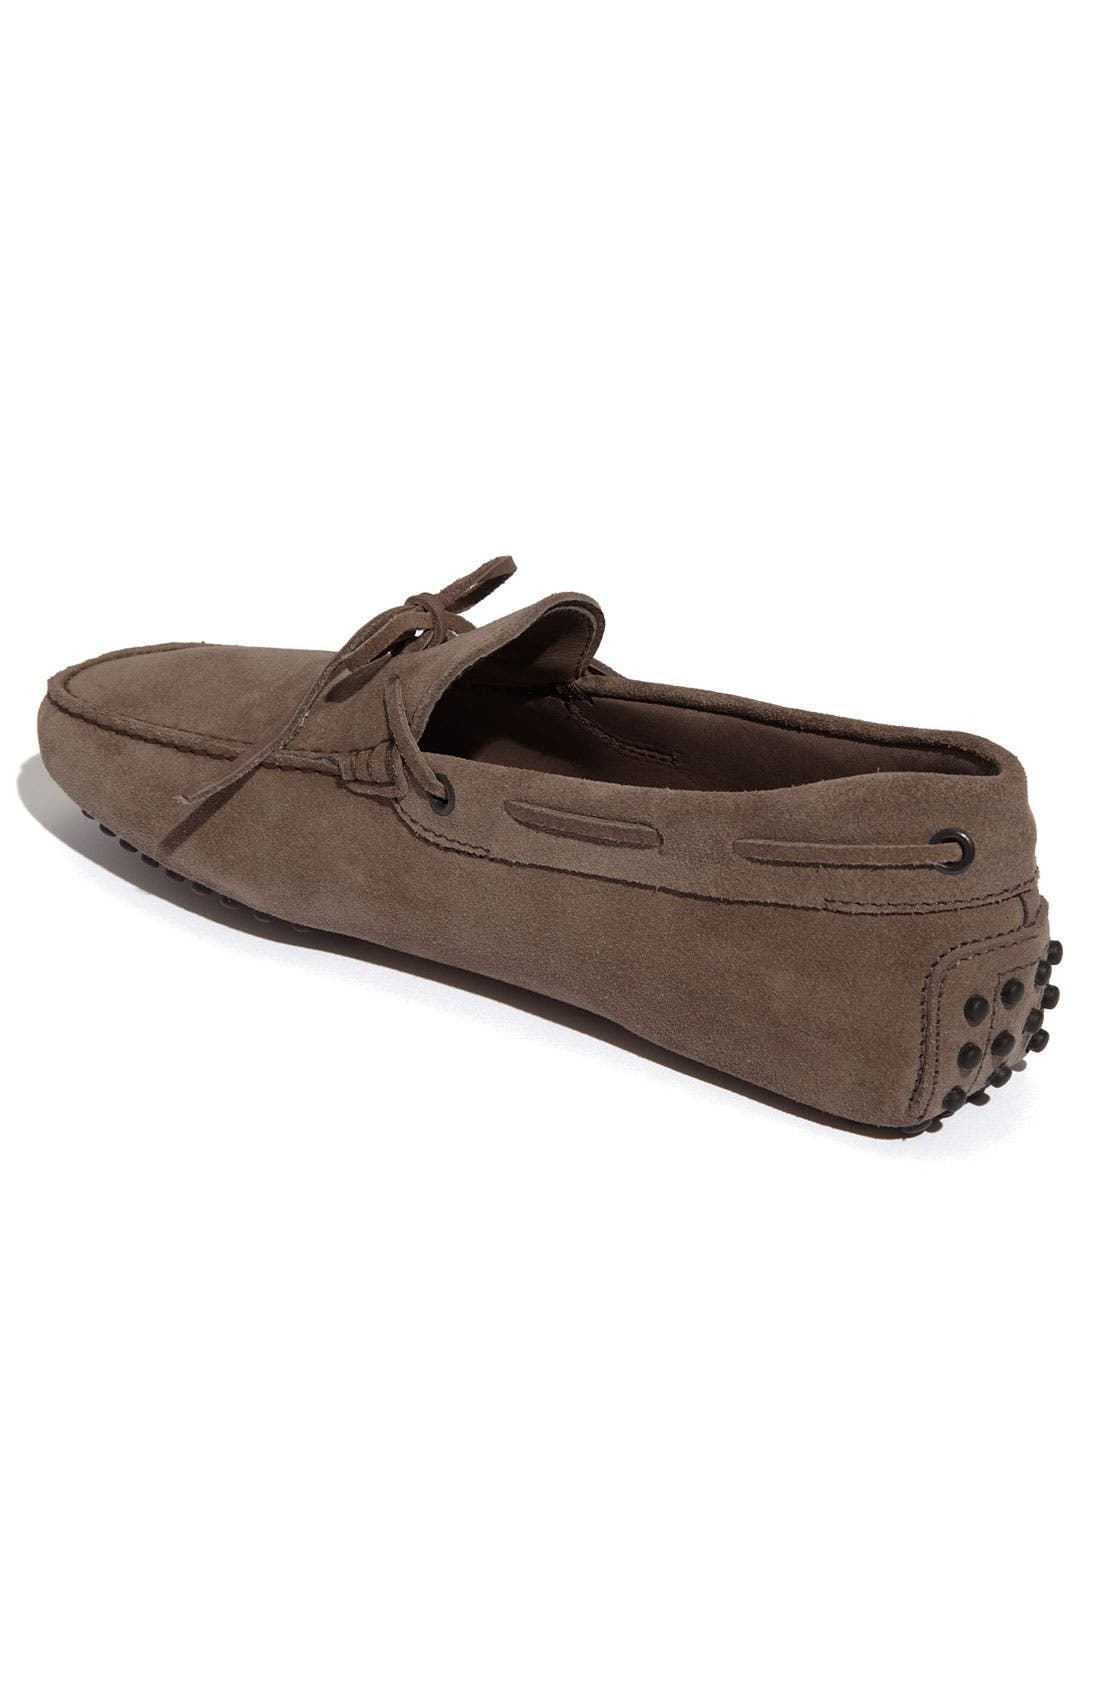 Gommini Tie Front Driving Moccasin,                             Alternate thumbnail 51, color,